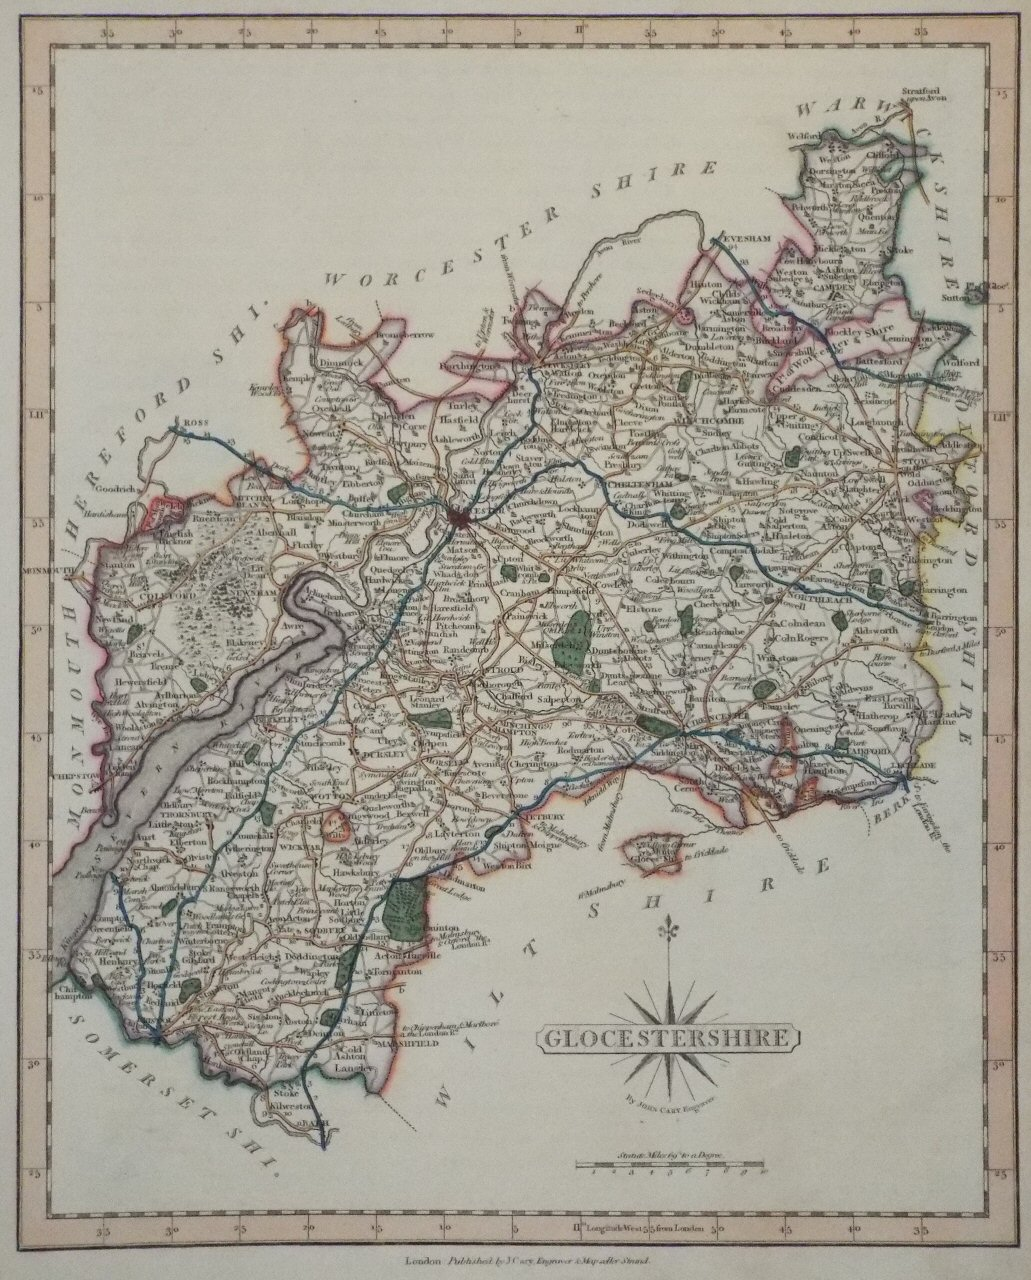 Map of Gloucestershire - Cary